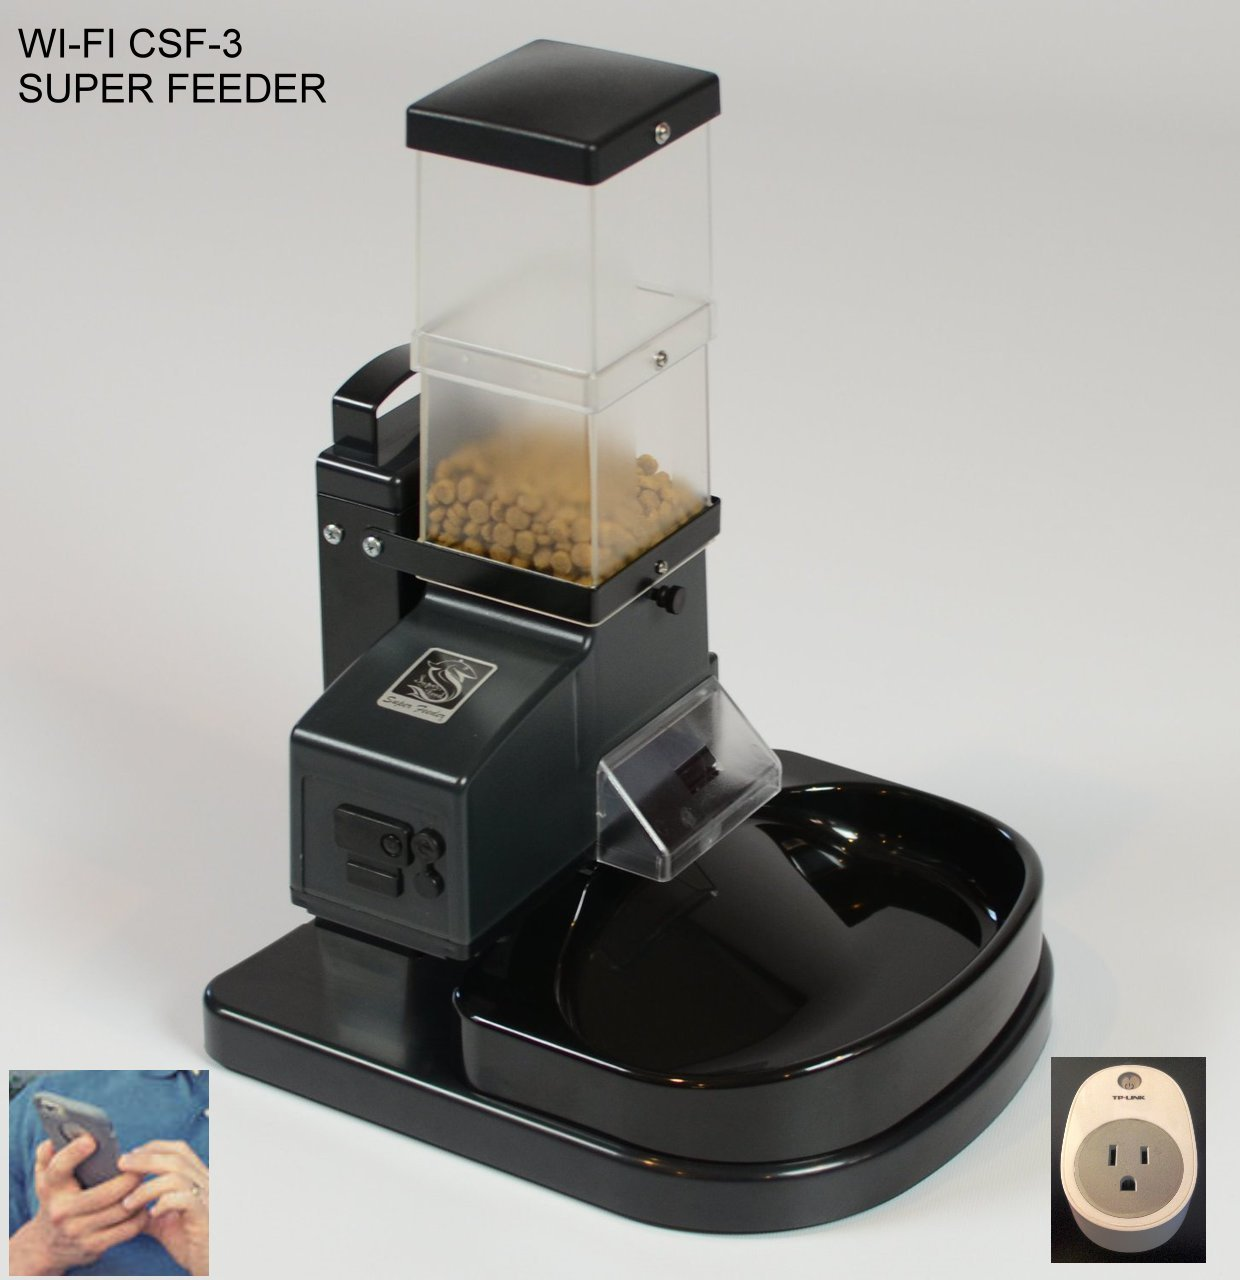 Automatic Cat Super Feeder CSF-3 with Wi-Fi Plug for Alexa, Iphone, etc...